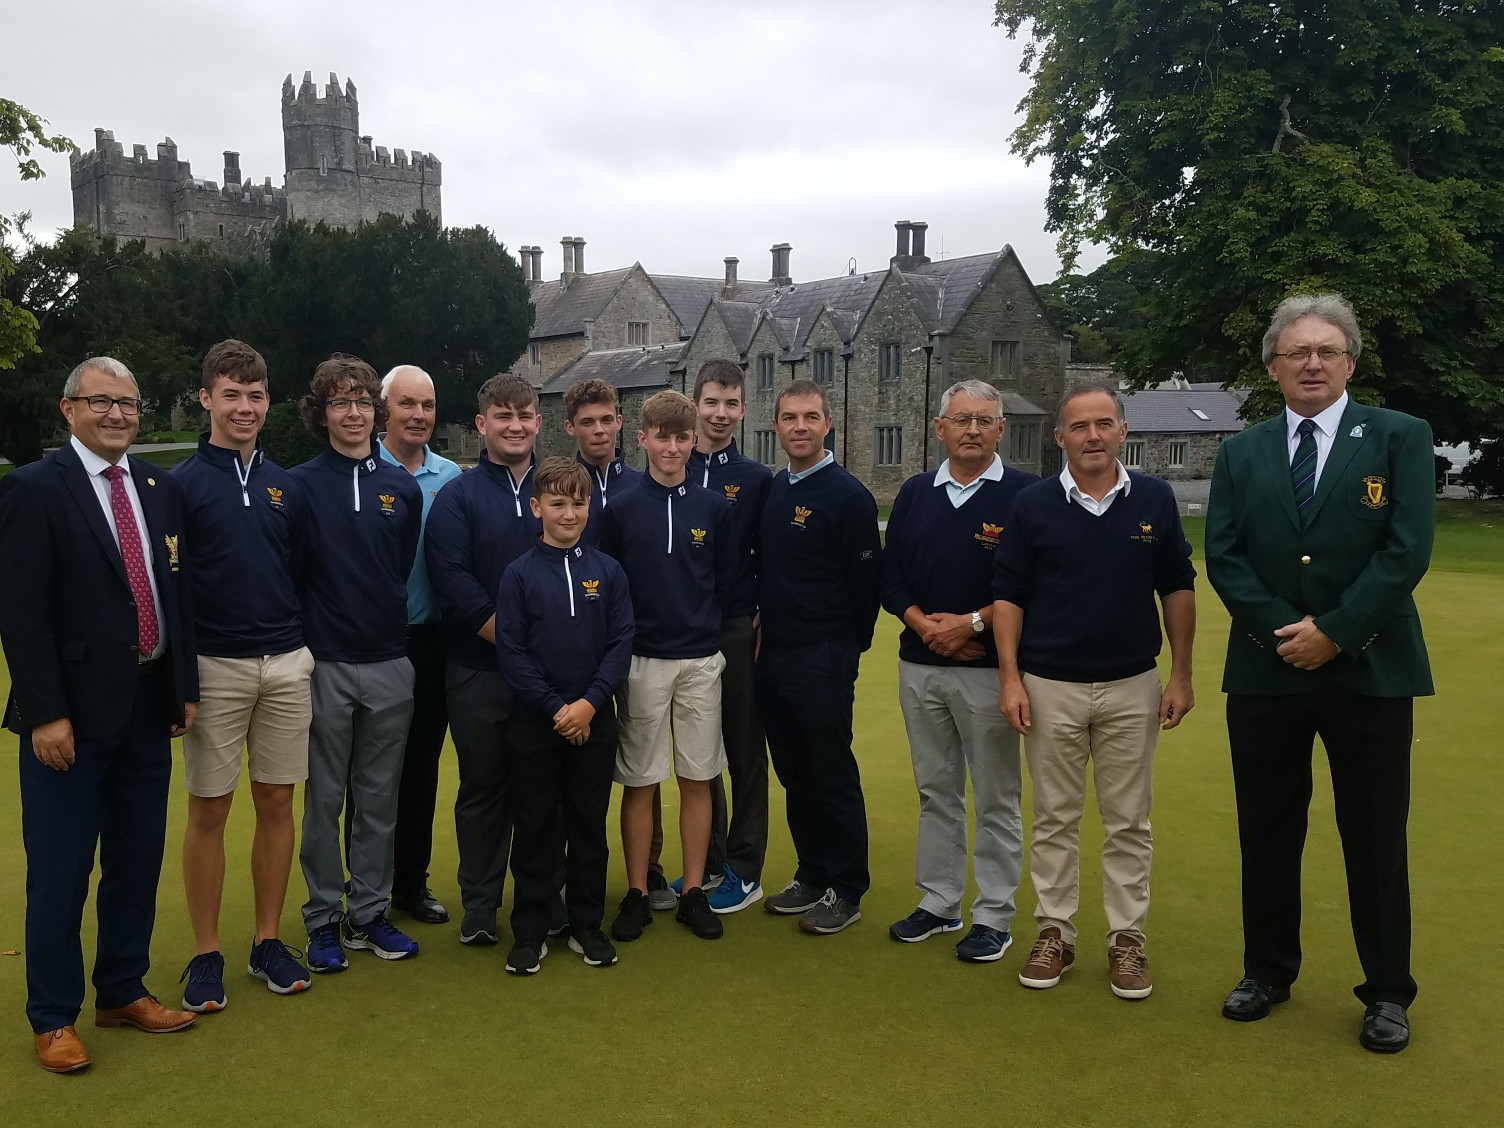 Leinster winners at Kilkea Castle